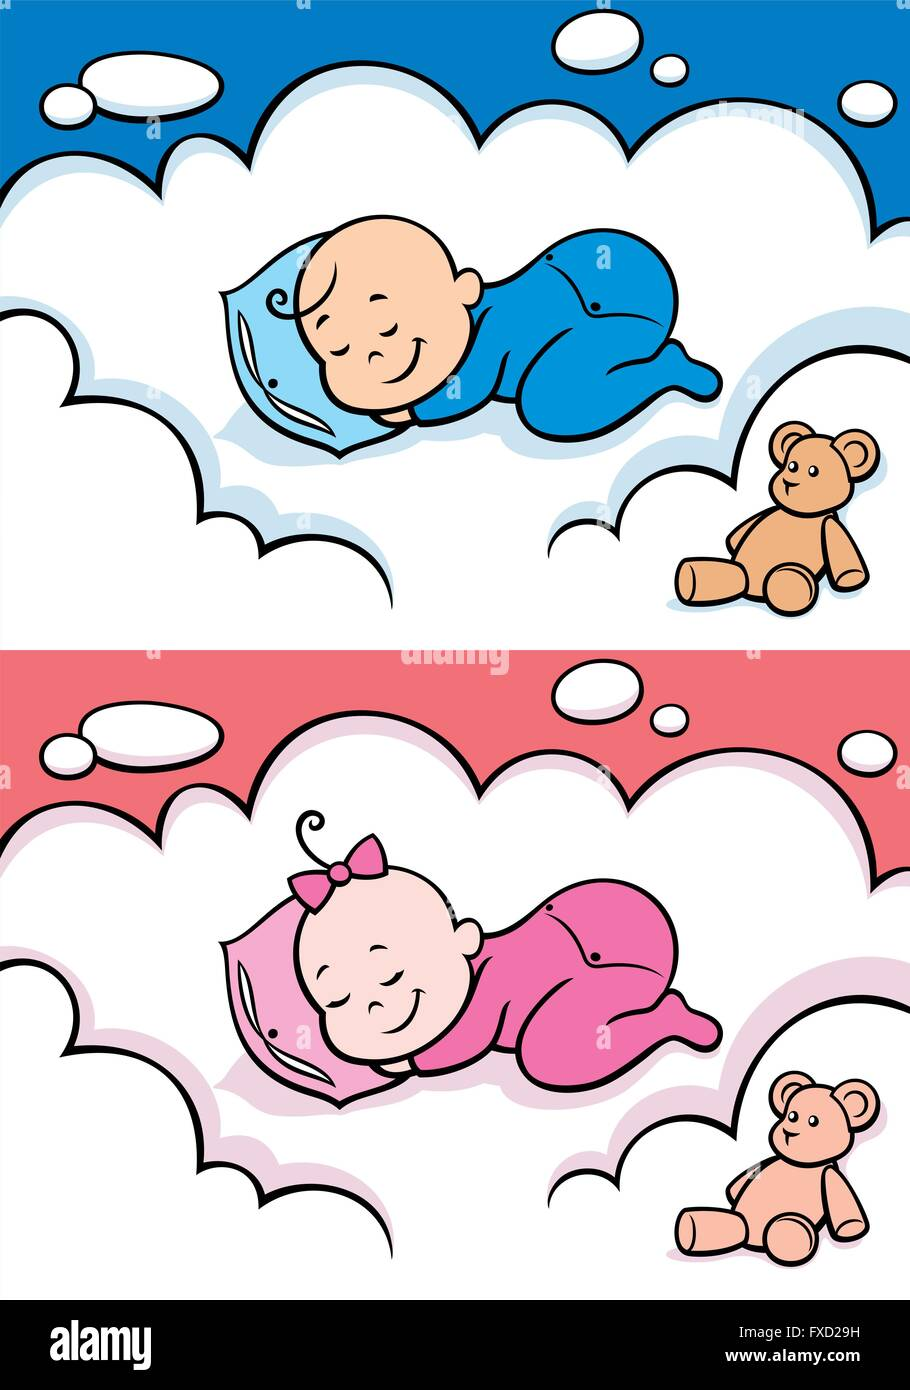 cartoon baby sleeping on cloud. the illustration is in 2 versions